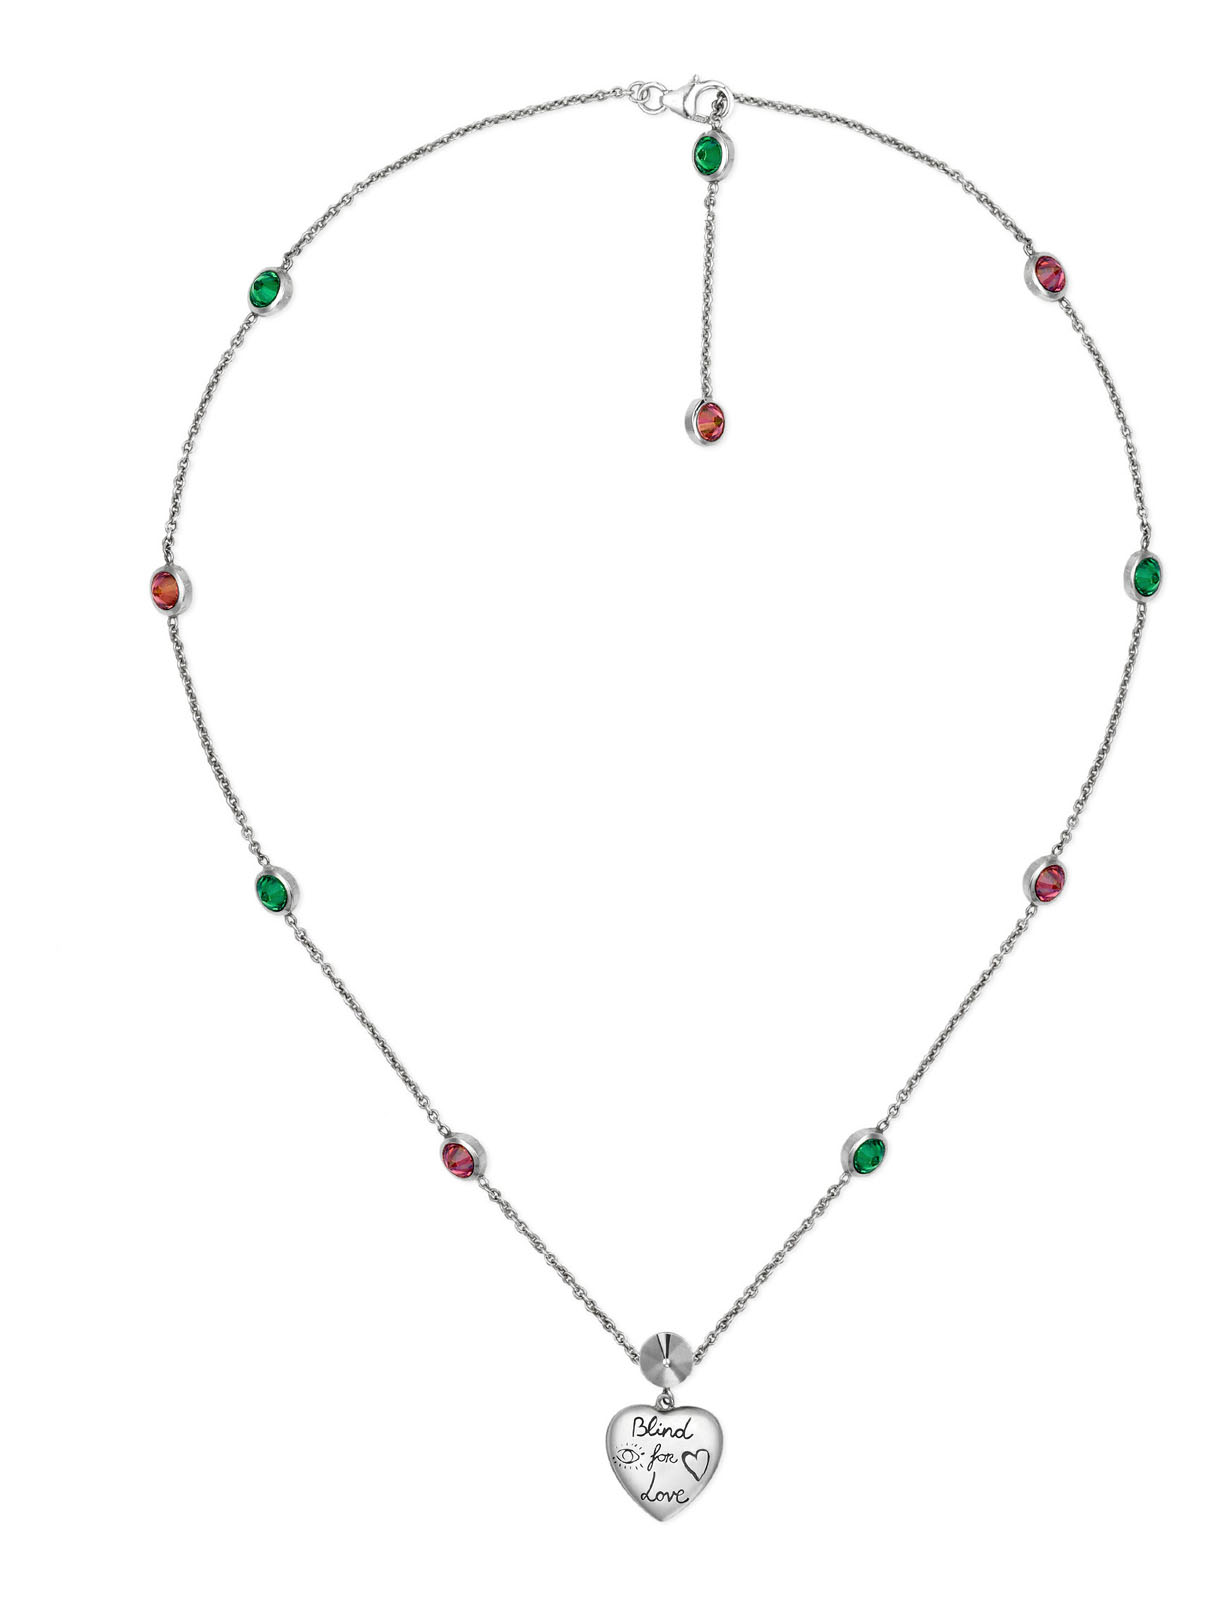 38f131dd0 Blind for Love necklace in silver - Lindroos